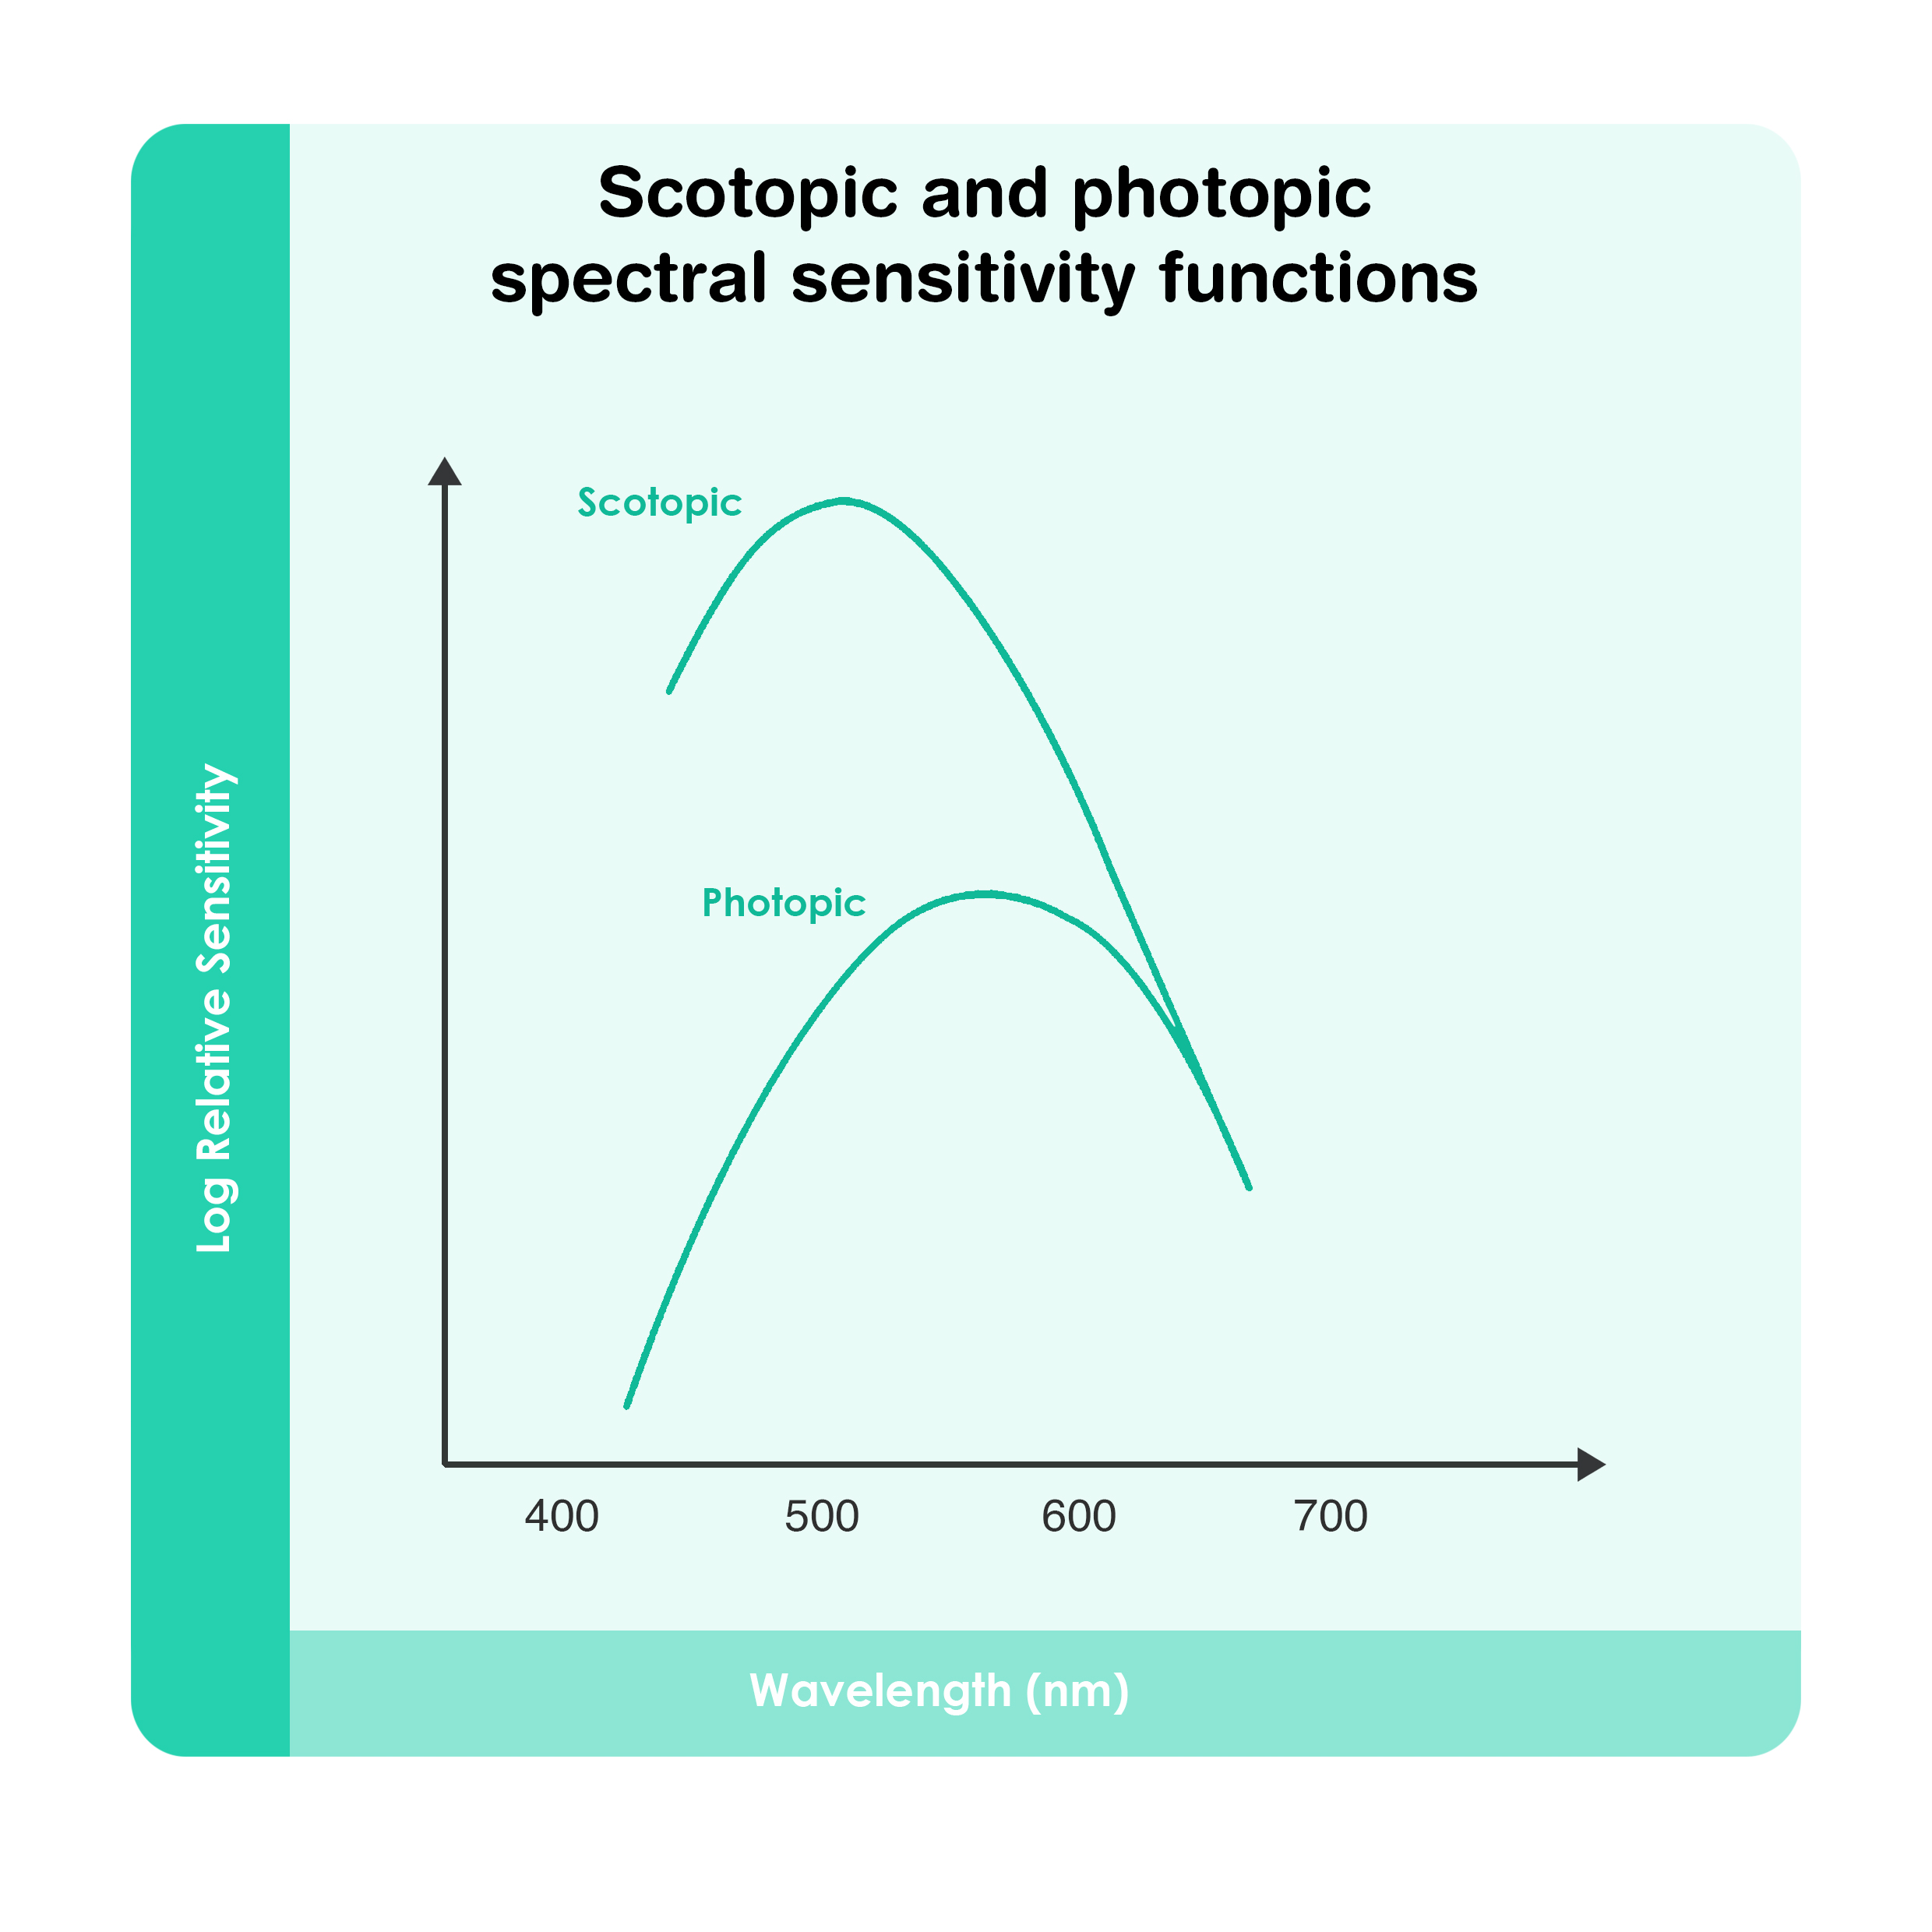 Scotopic and Photopic Spectral Sensitivity Functions